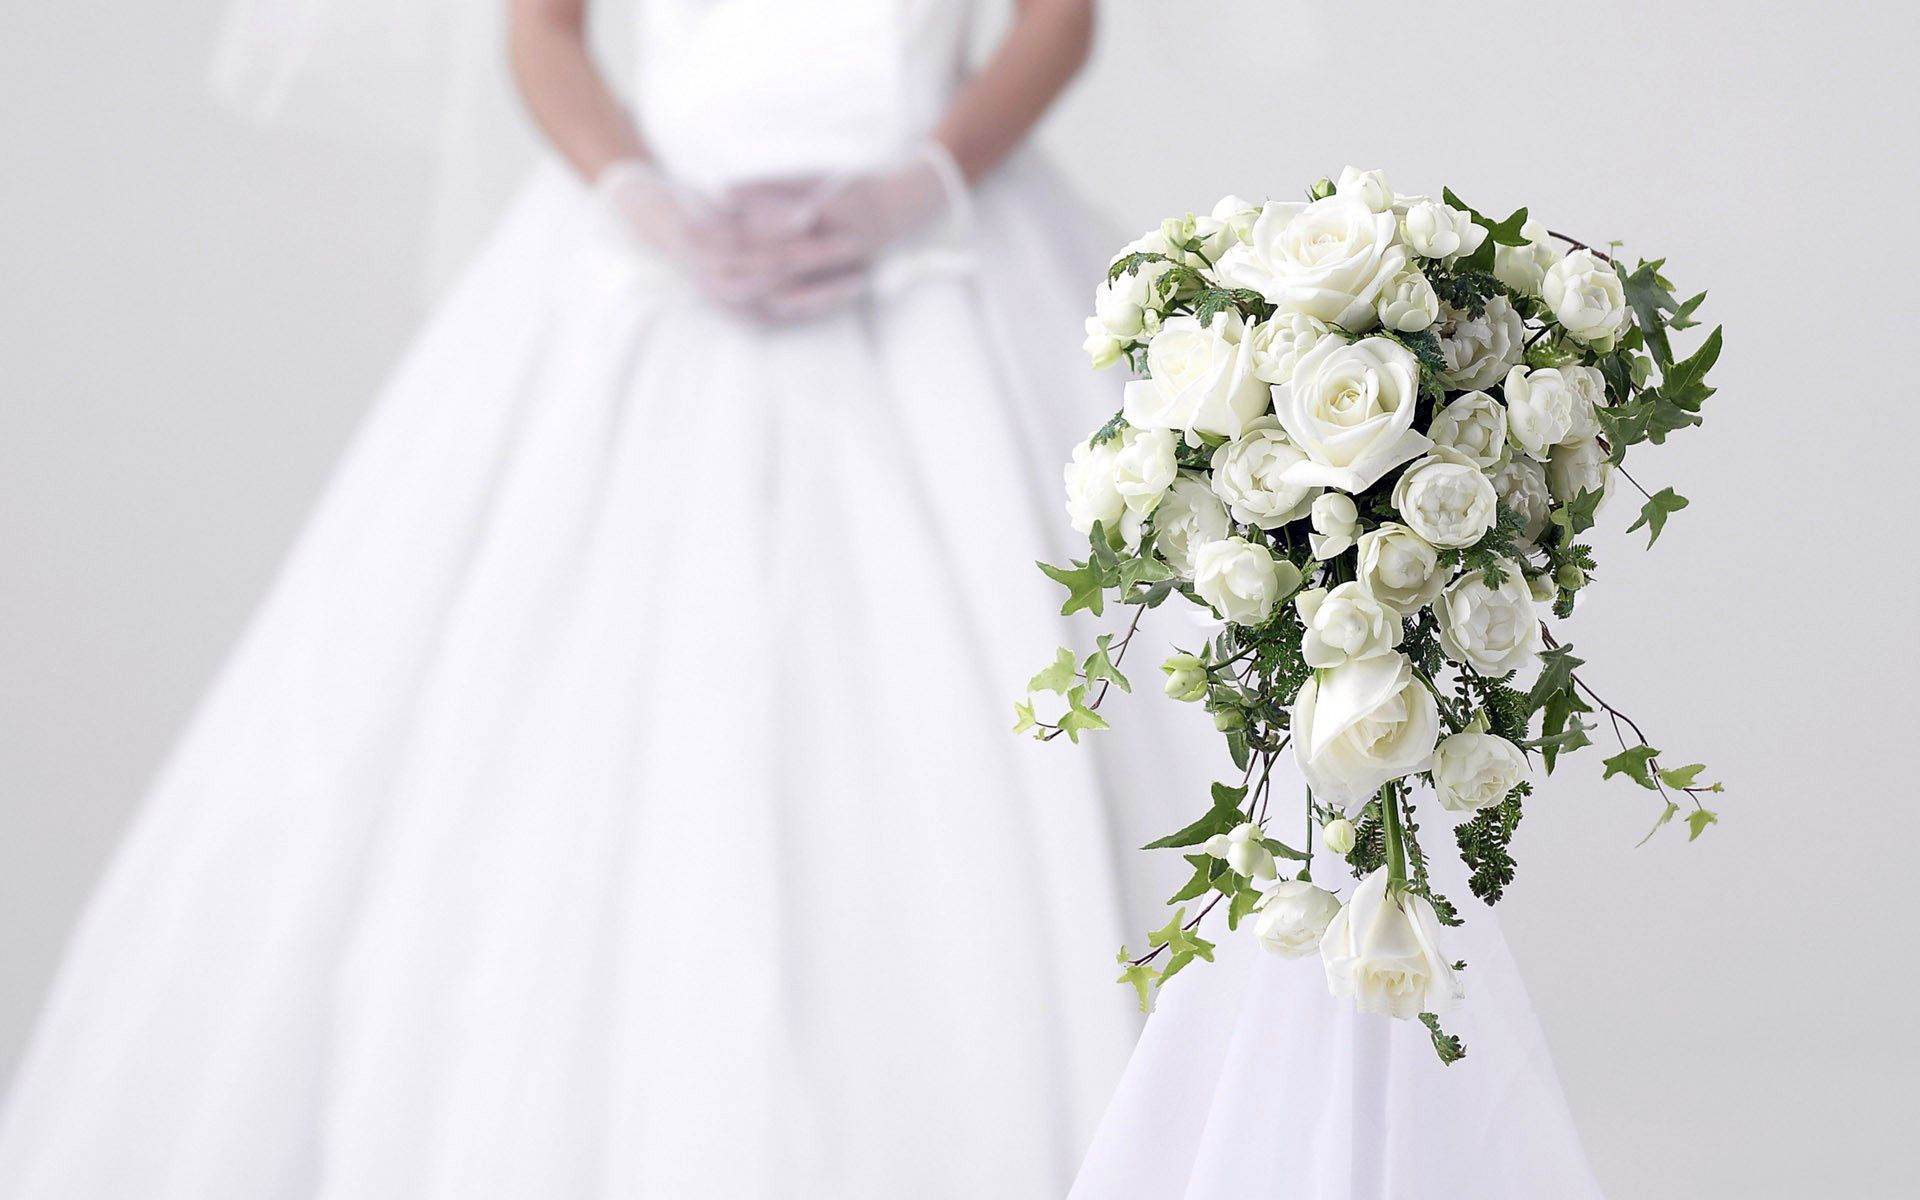 wedding, White, dress, bouquet, Rose, mood - HD wallpaper desktop backgrounds